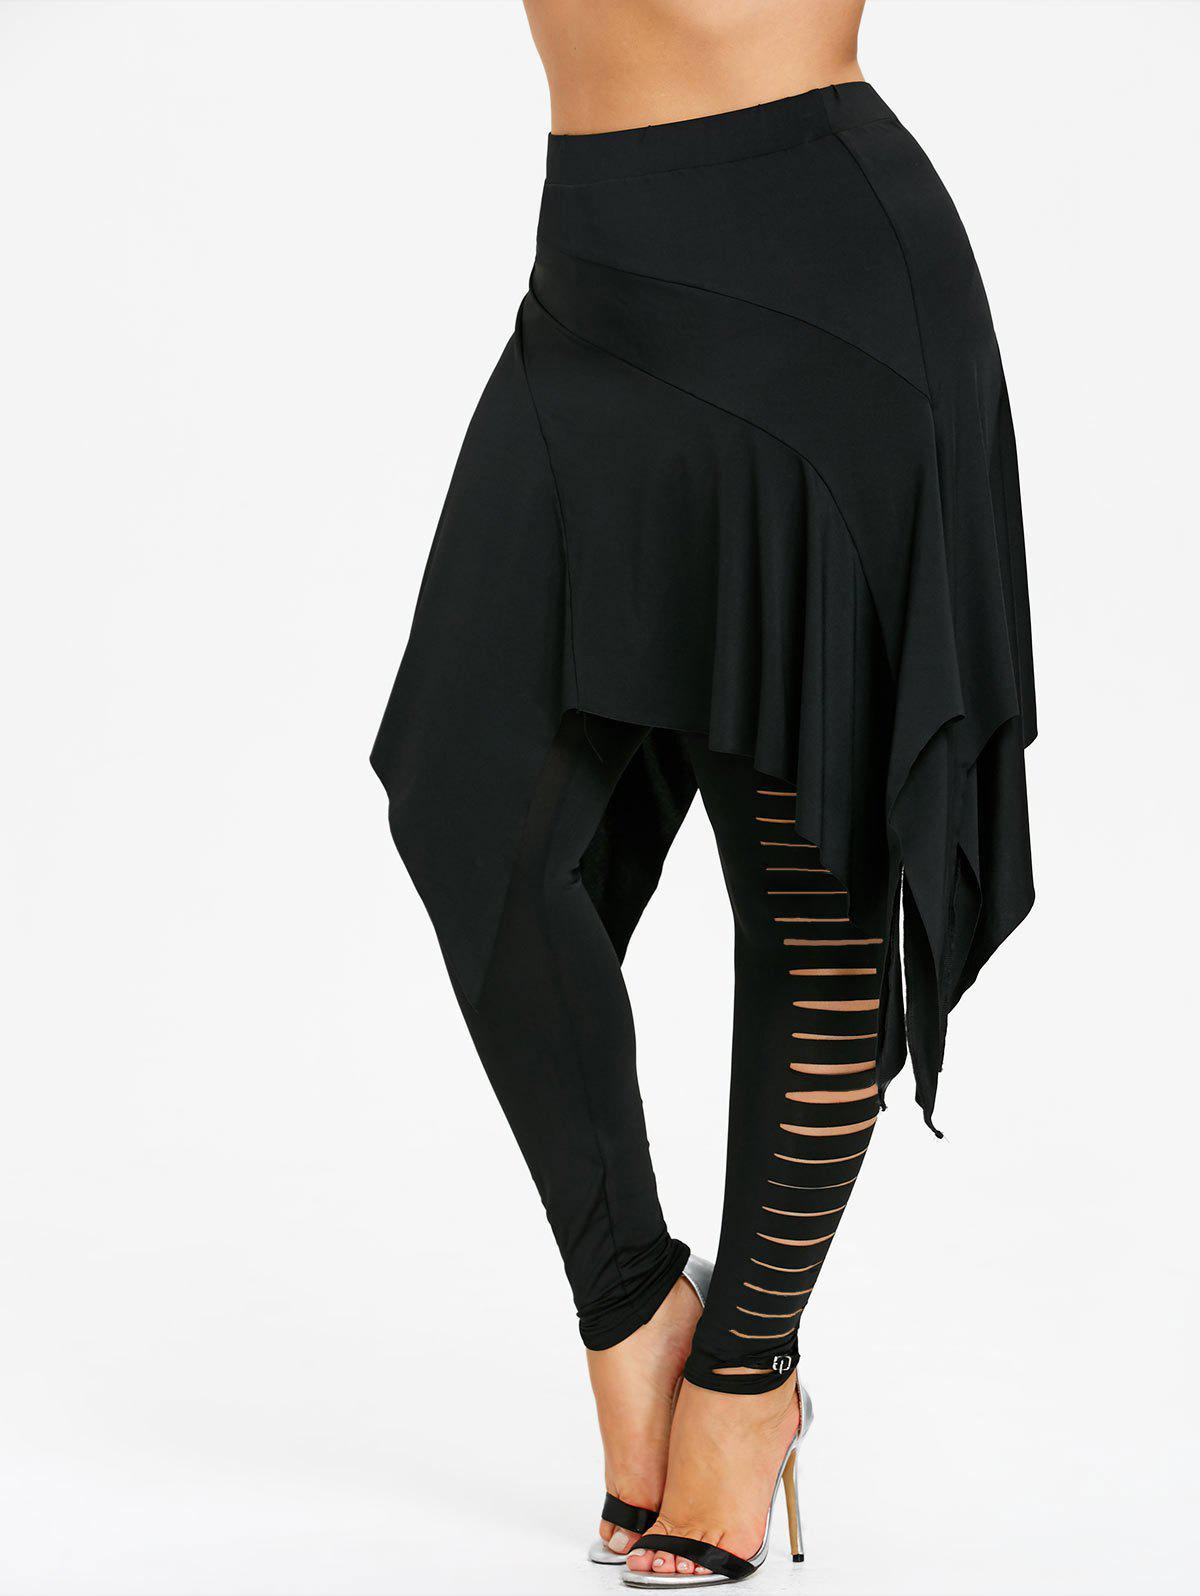 Sale Plus Size Ladder Shredding Handkerchief Skirted Leggings